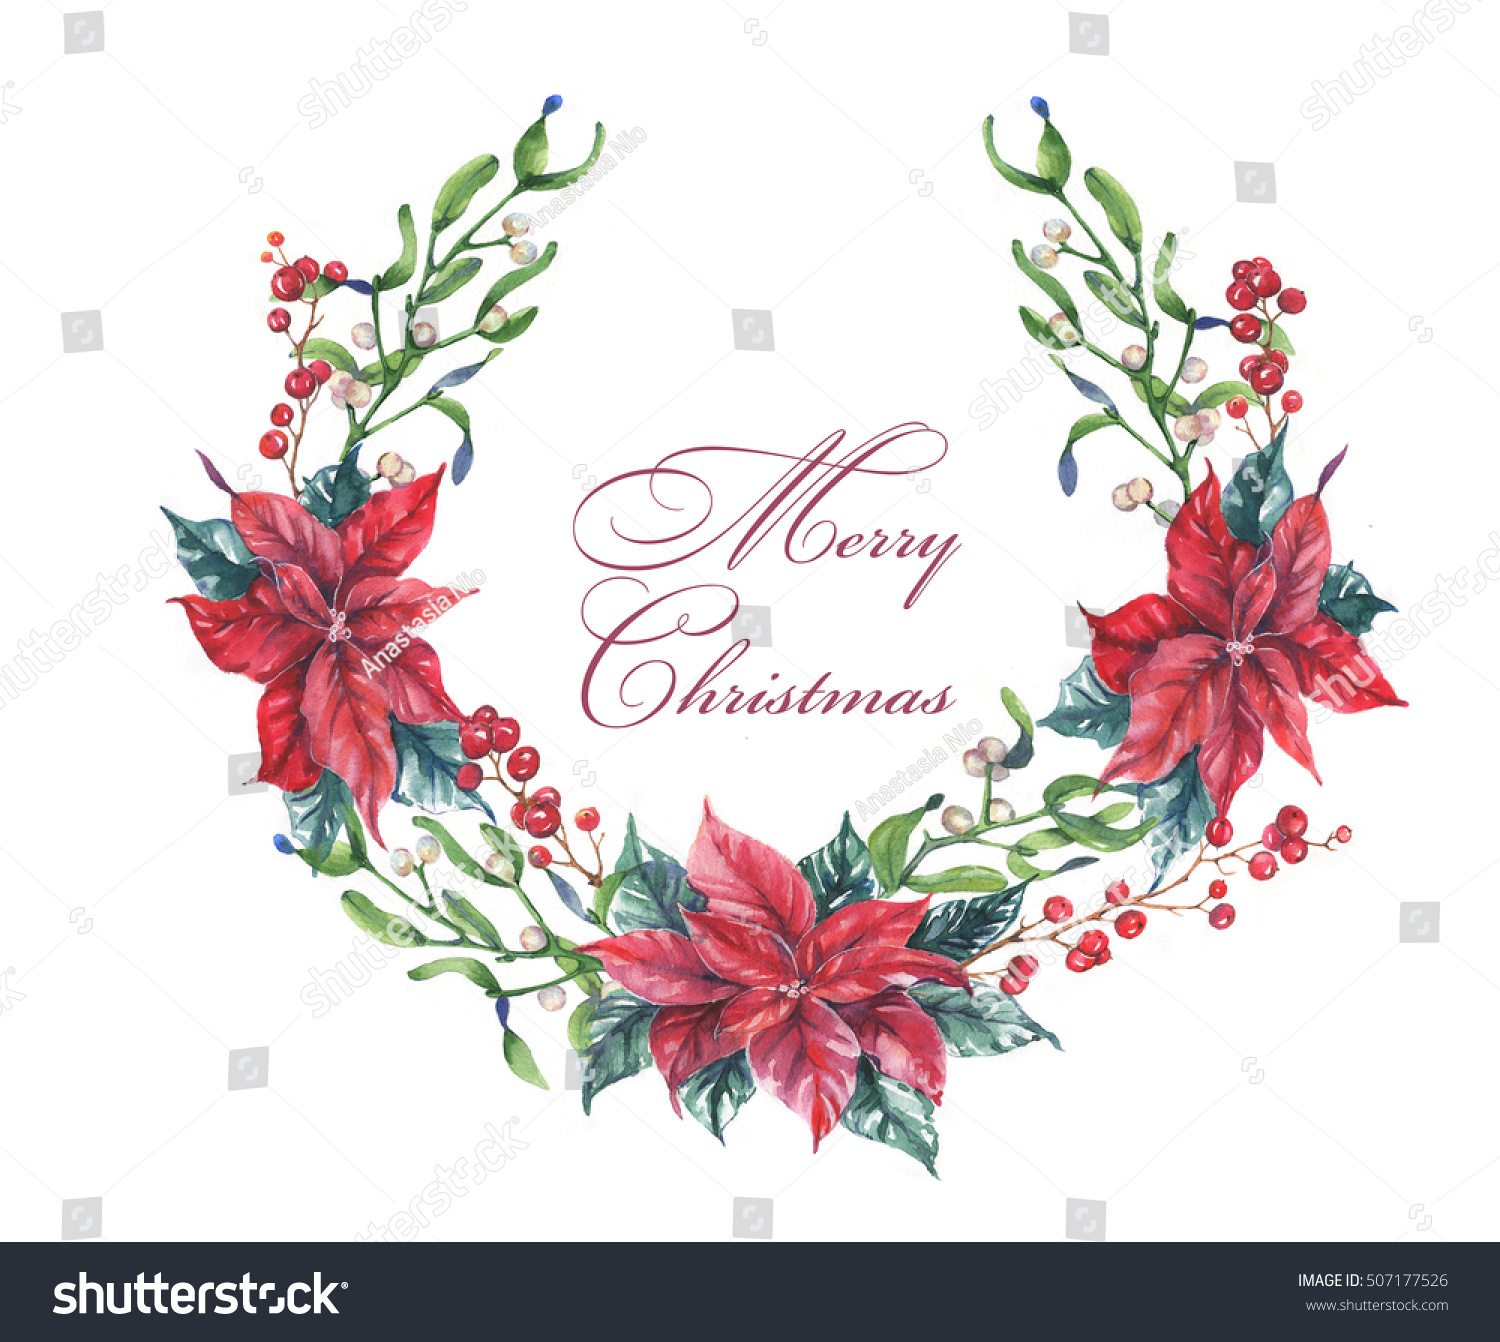 Happy New Year Merry Christmas Greeting Stock Illustration 507177526